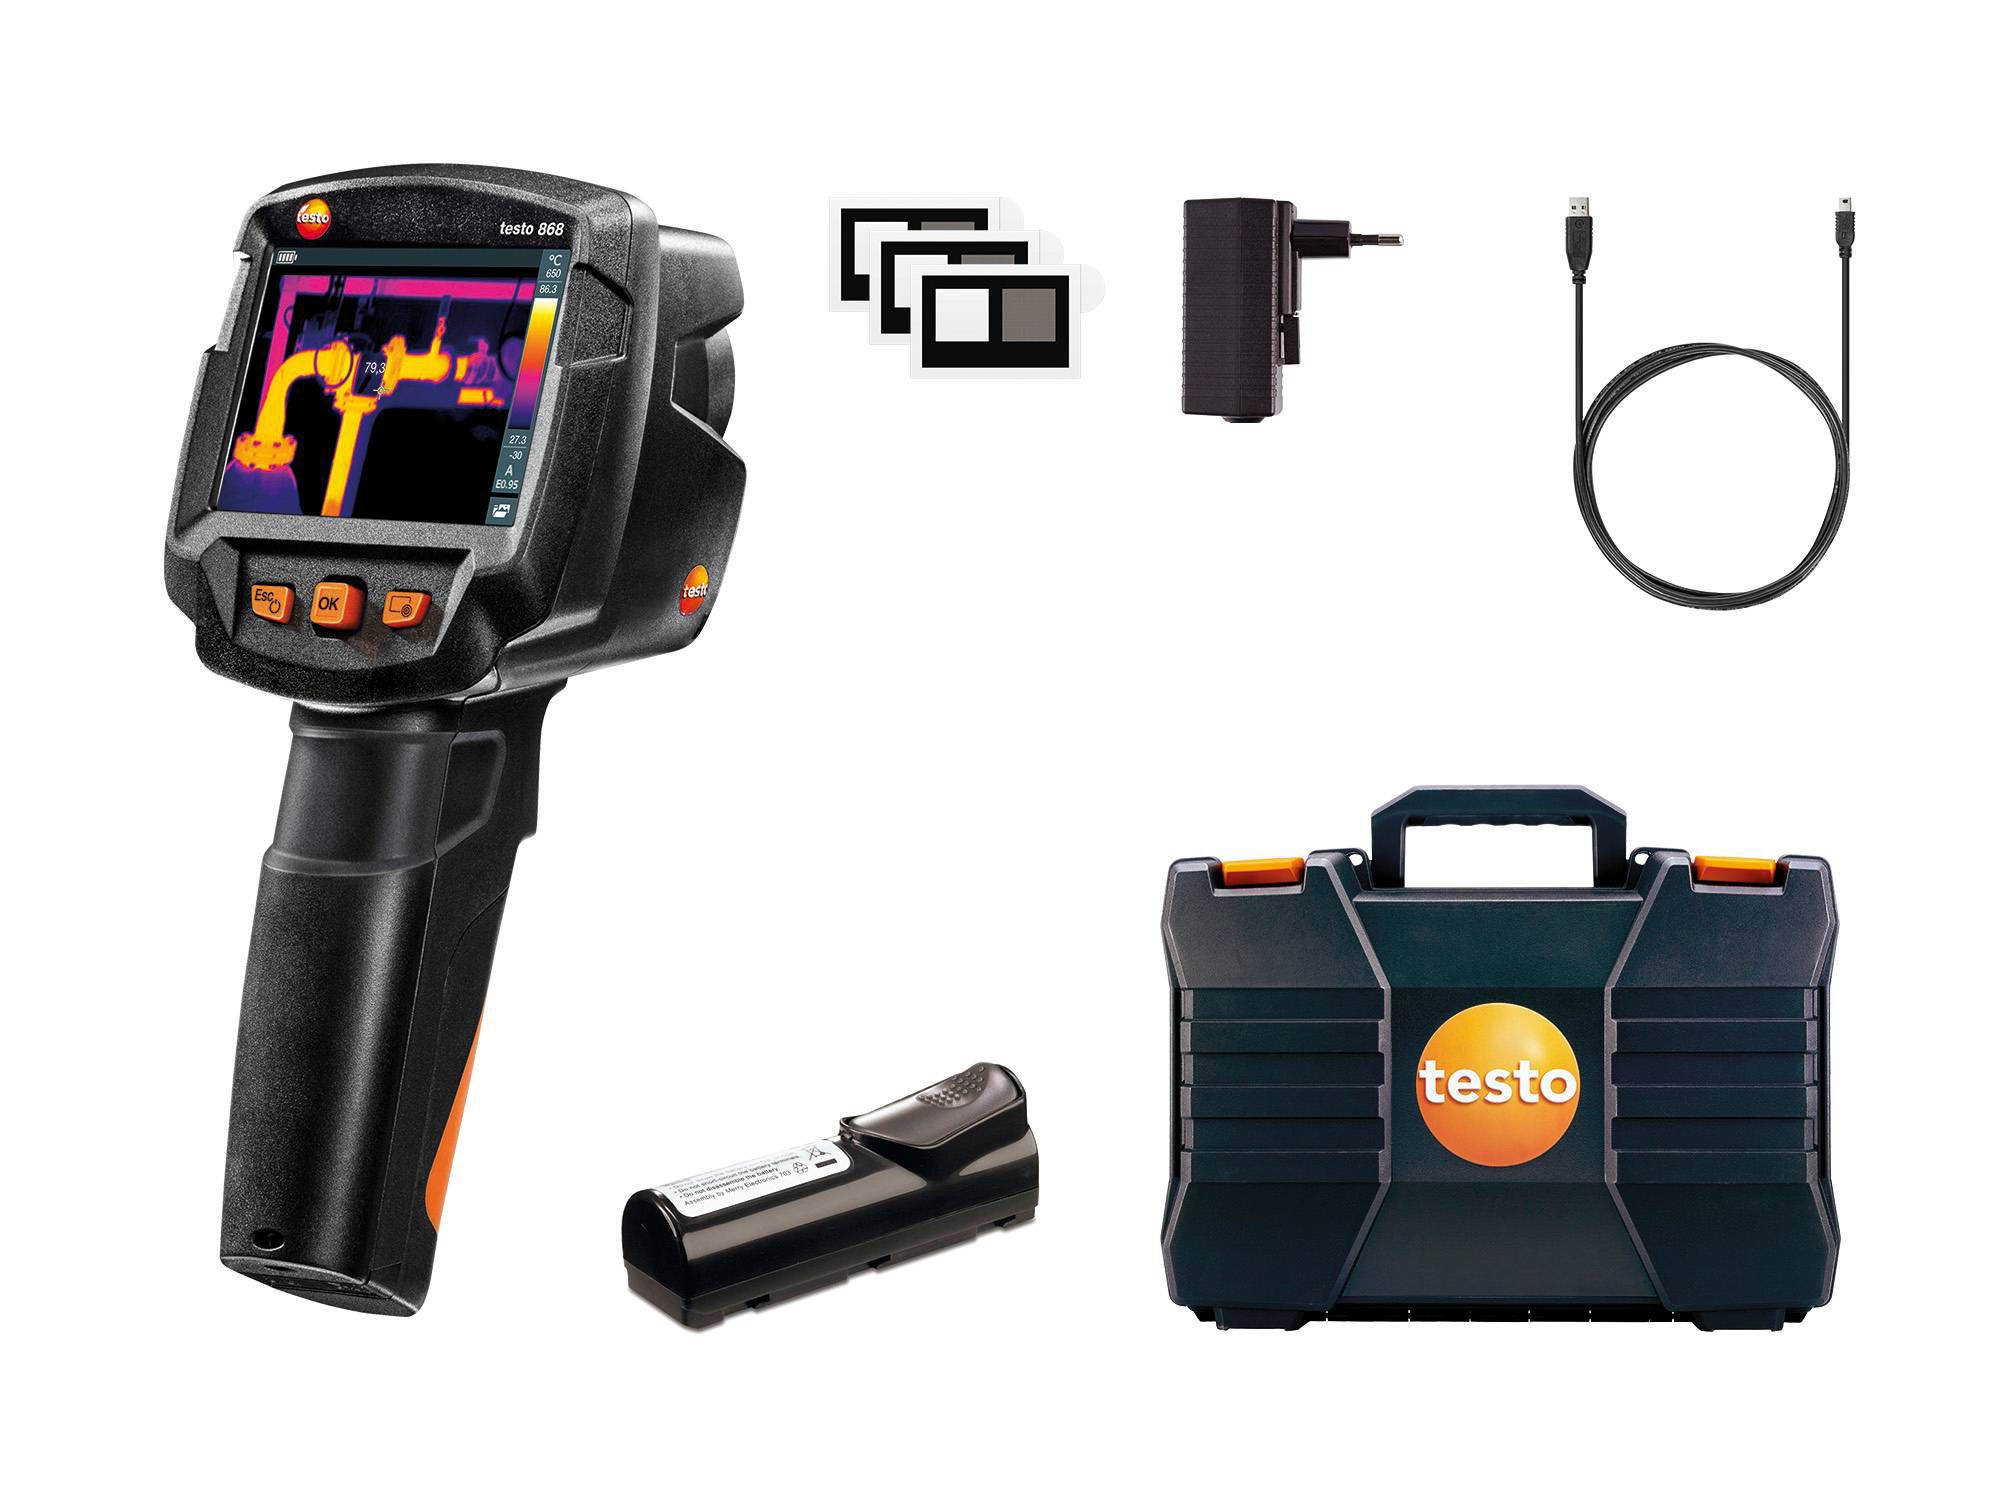 testo 868 - thermal imager